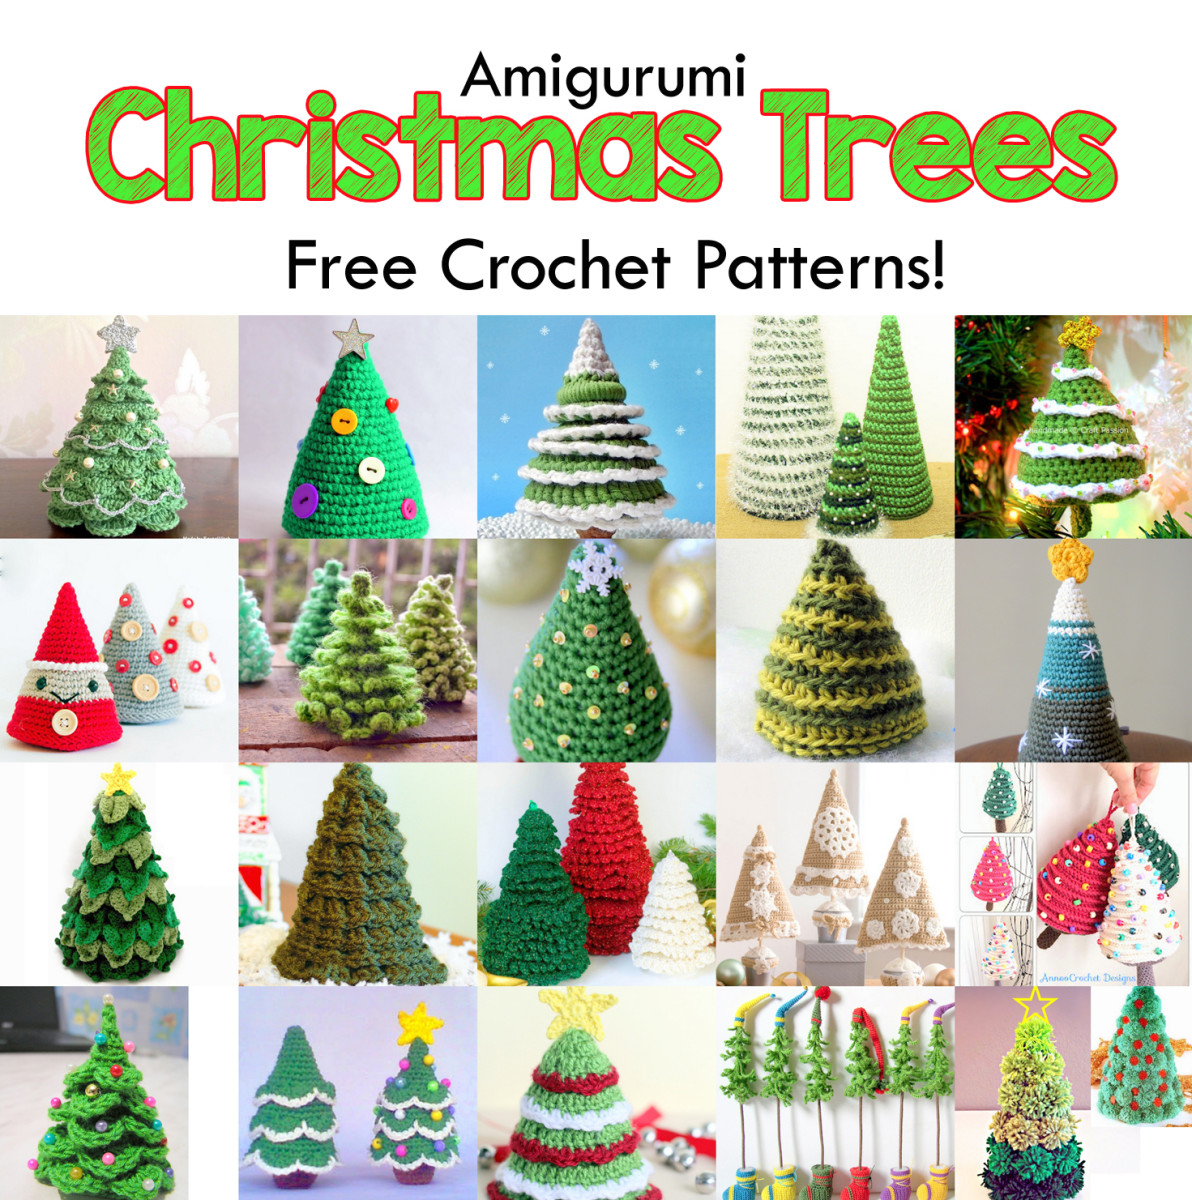 21 Free Amigurumi Christmas Tree Crochet Patterns